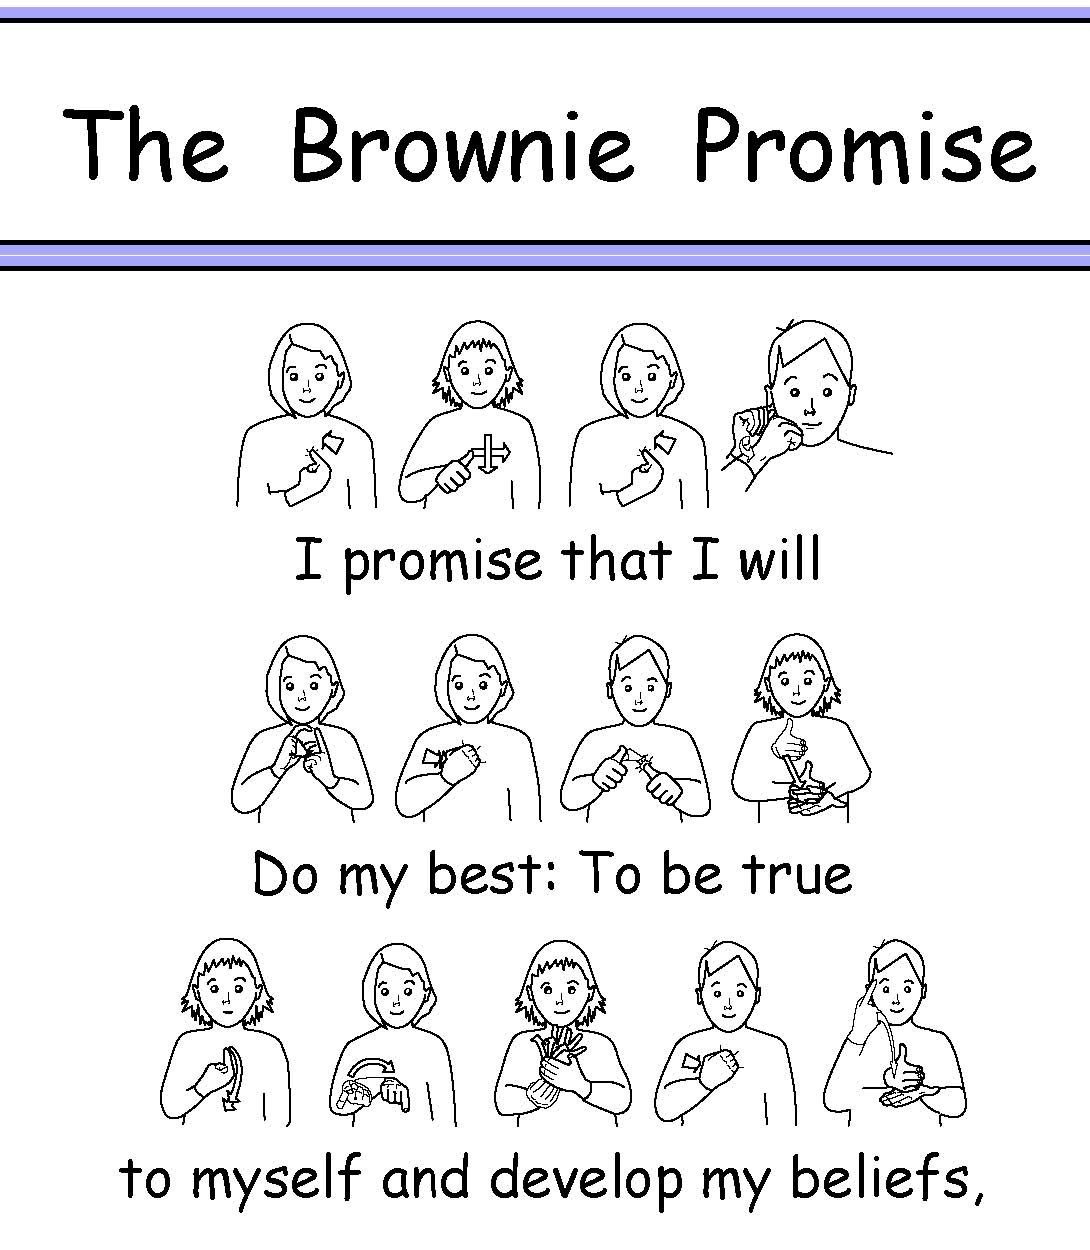 BSL Brownie Promise British Sign Language could be very